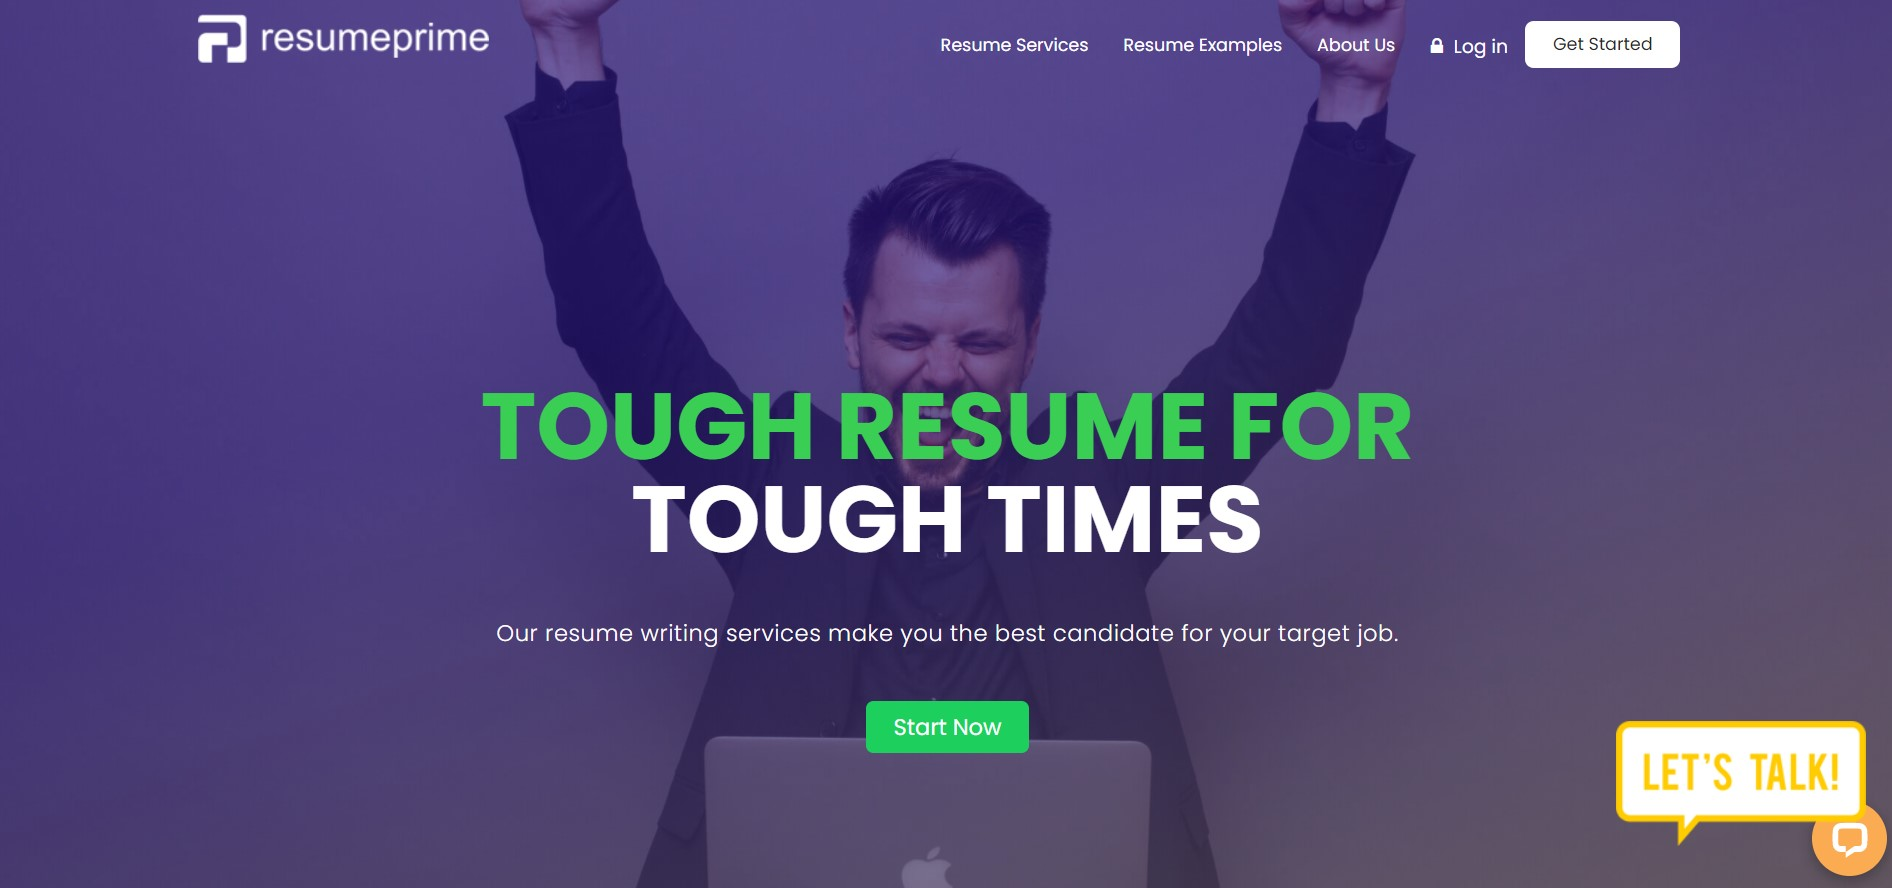 Header image of Resume Prime offering best executive resume writing services